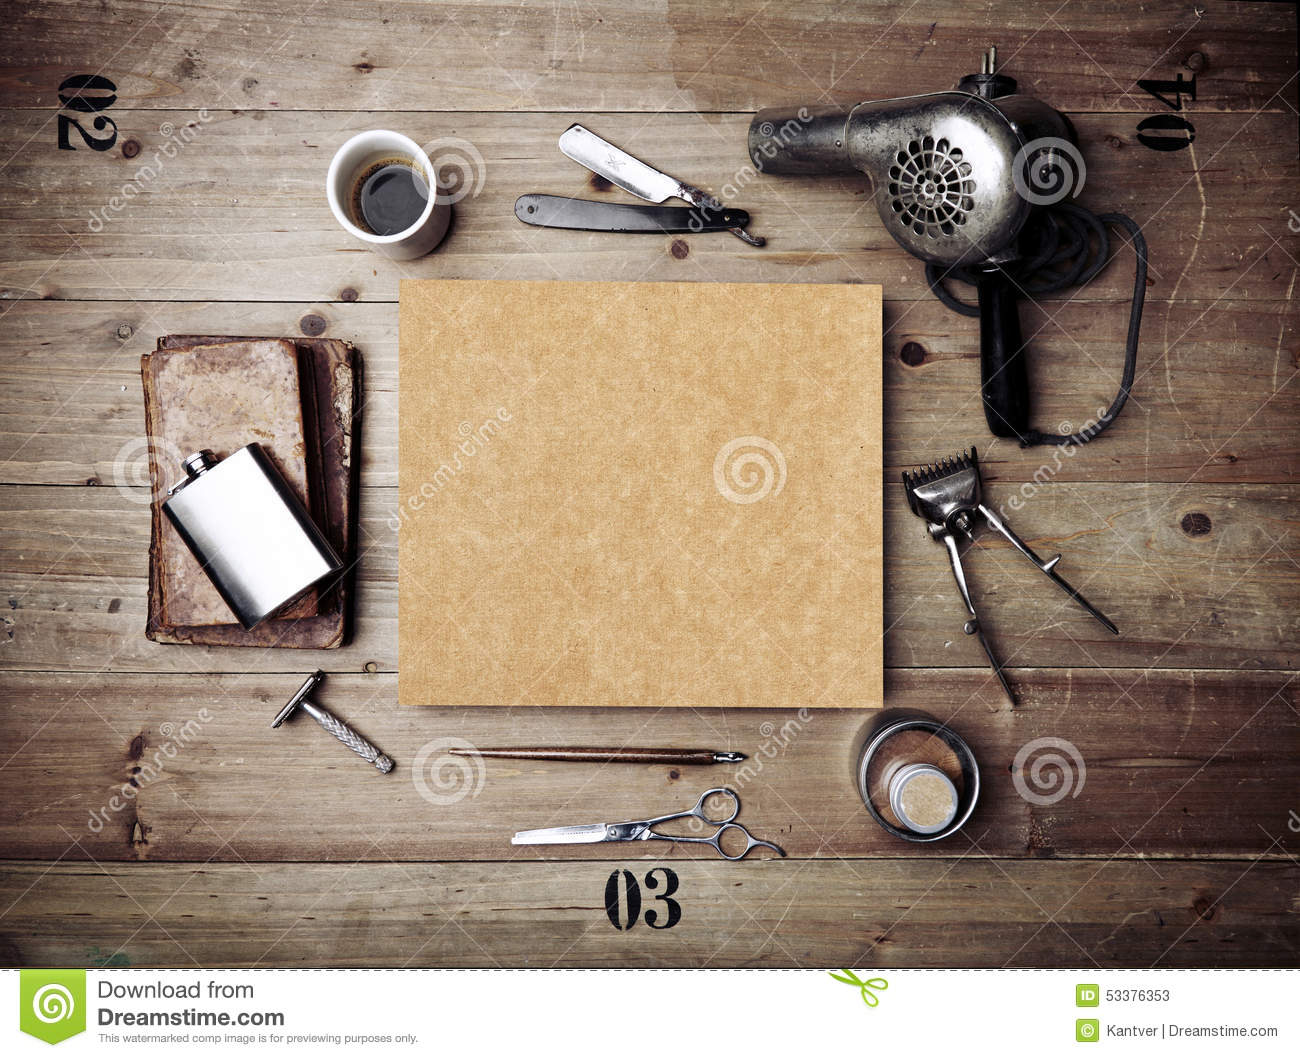 Poster design tools - Vintage Tools Of Barber Shop With Blank Kraft Poster Stock Photos